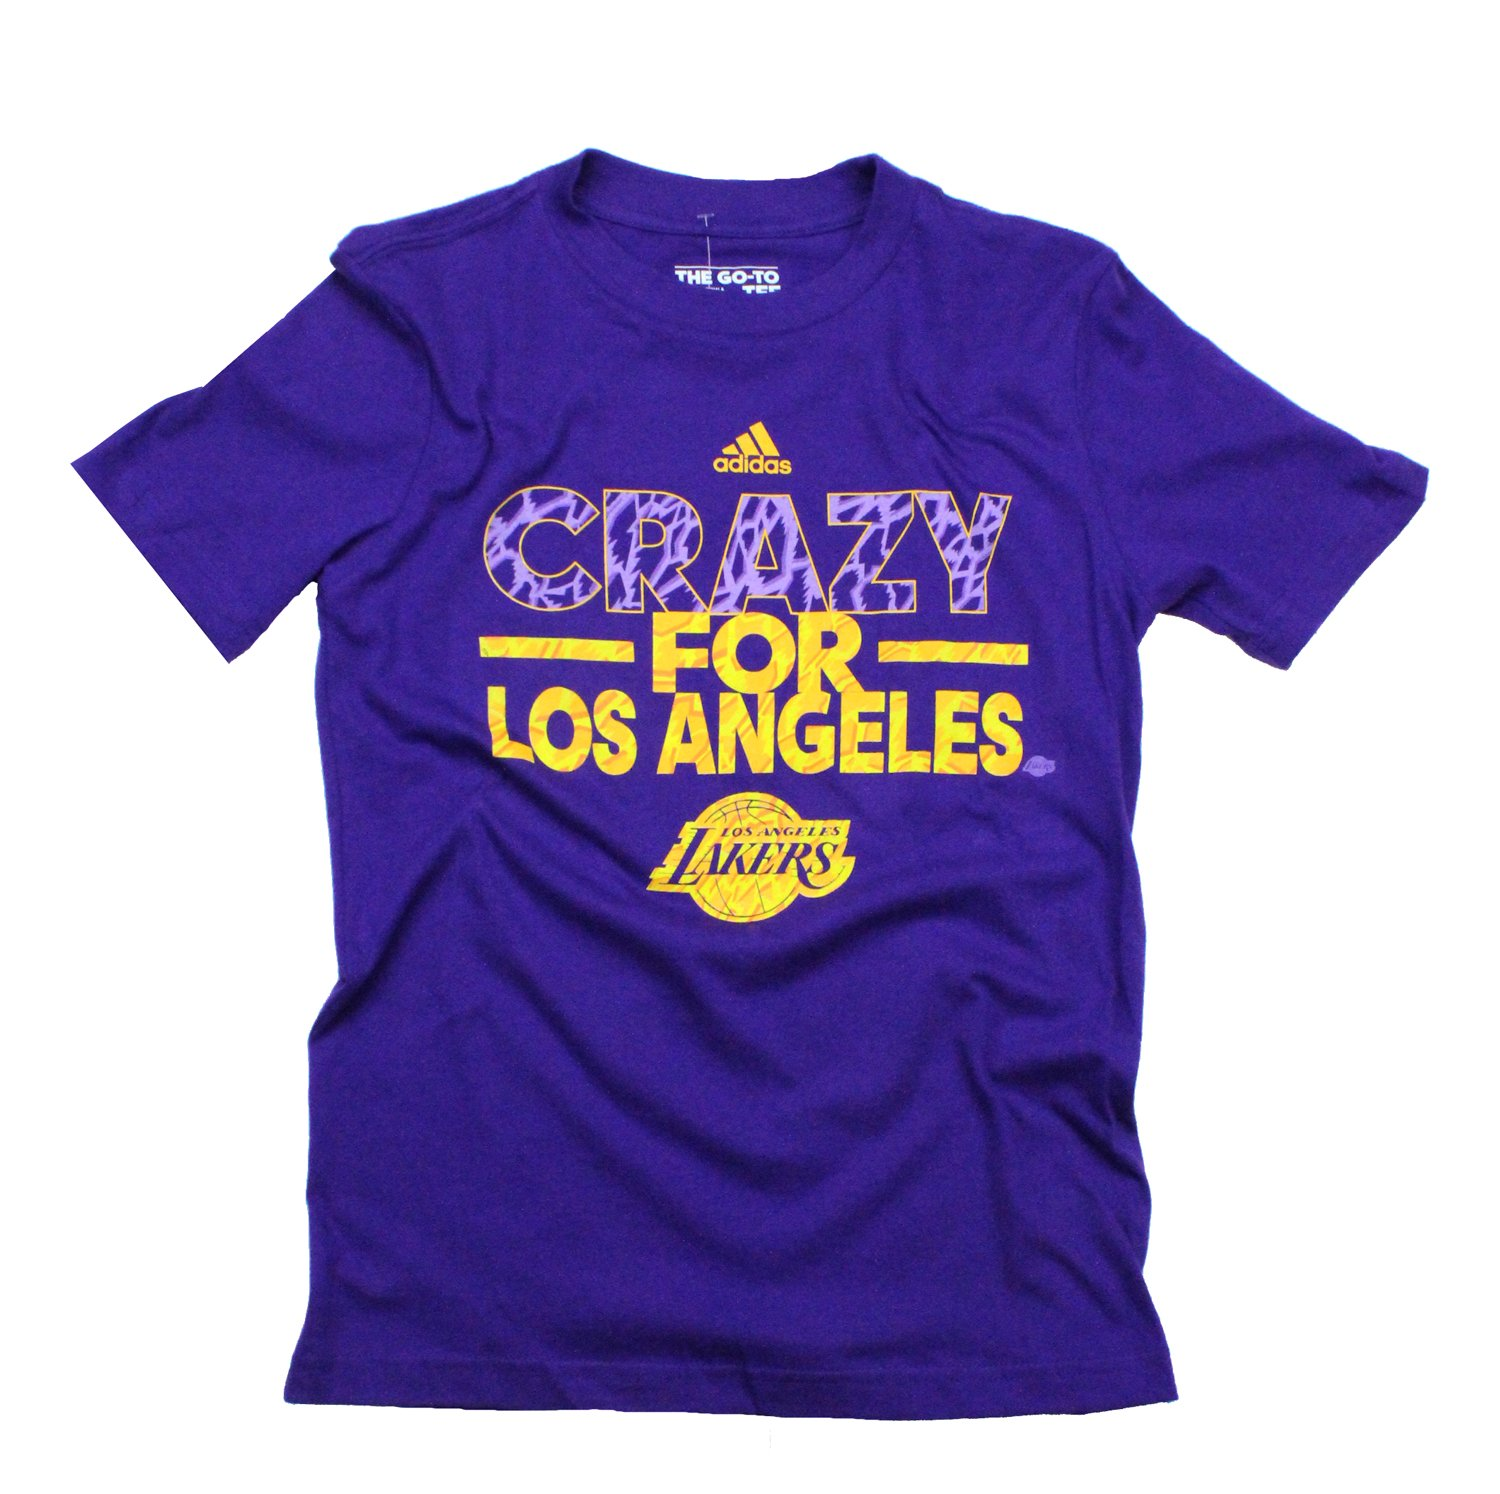 Adidas NBA Basketball Youth Los Angeles Lakers Crazy City T-Shirt - Purple